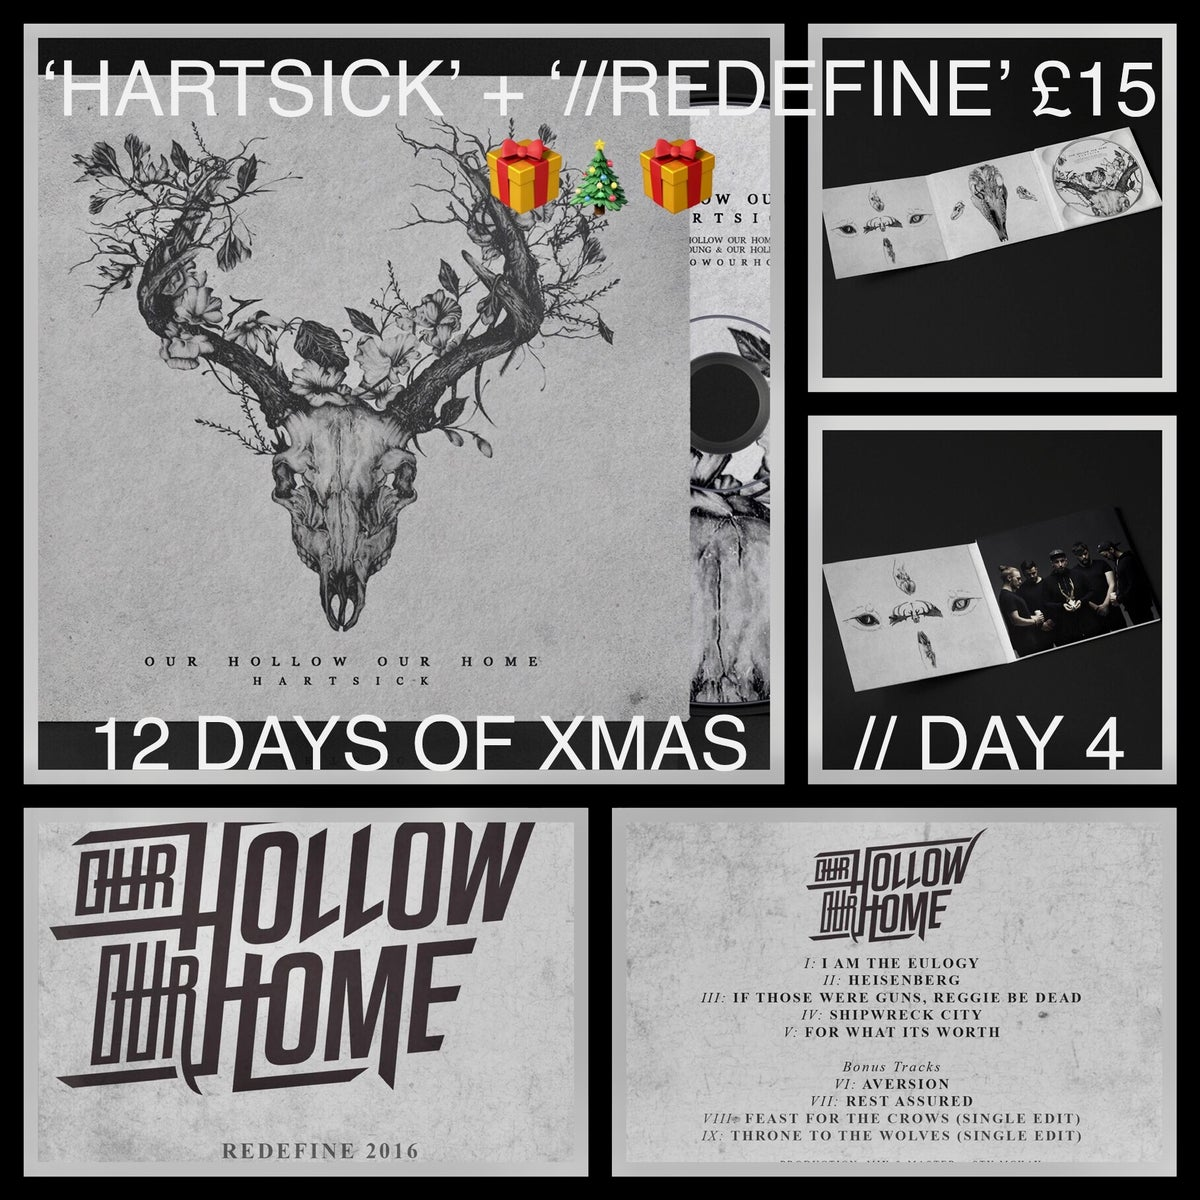 Image of 'HARTSICK' DIGIPACK CD + '//REDEFINE' CD